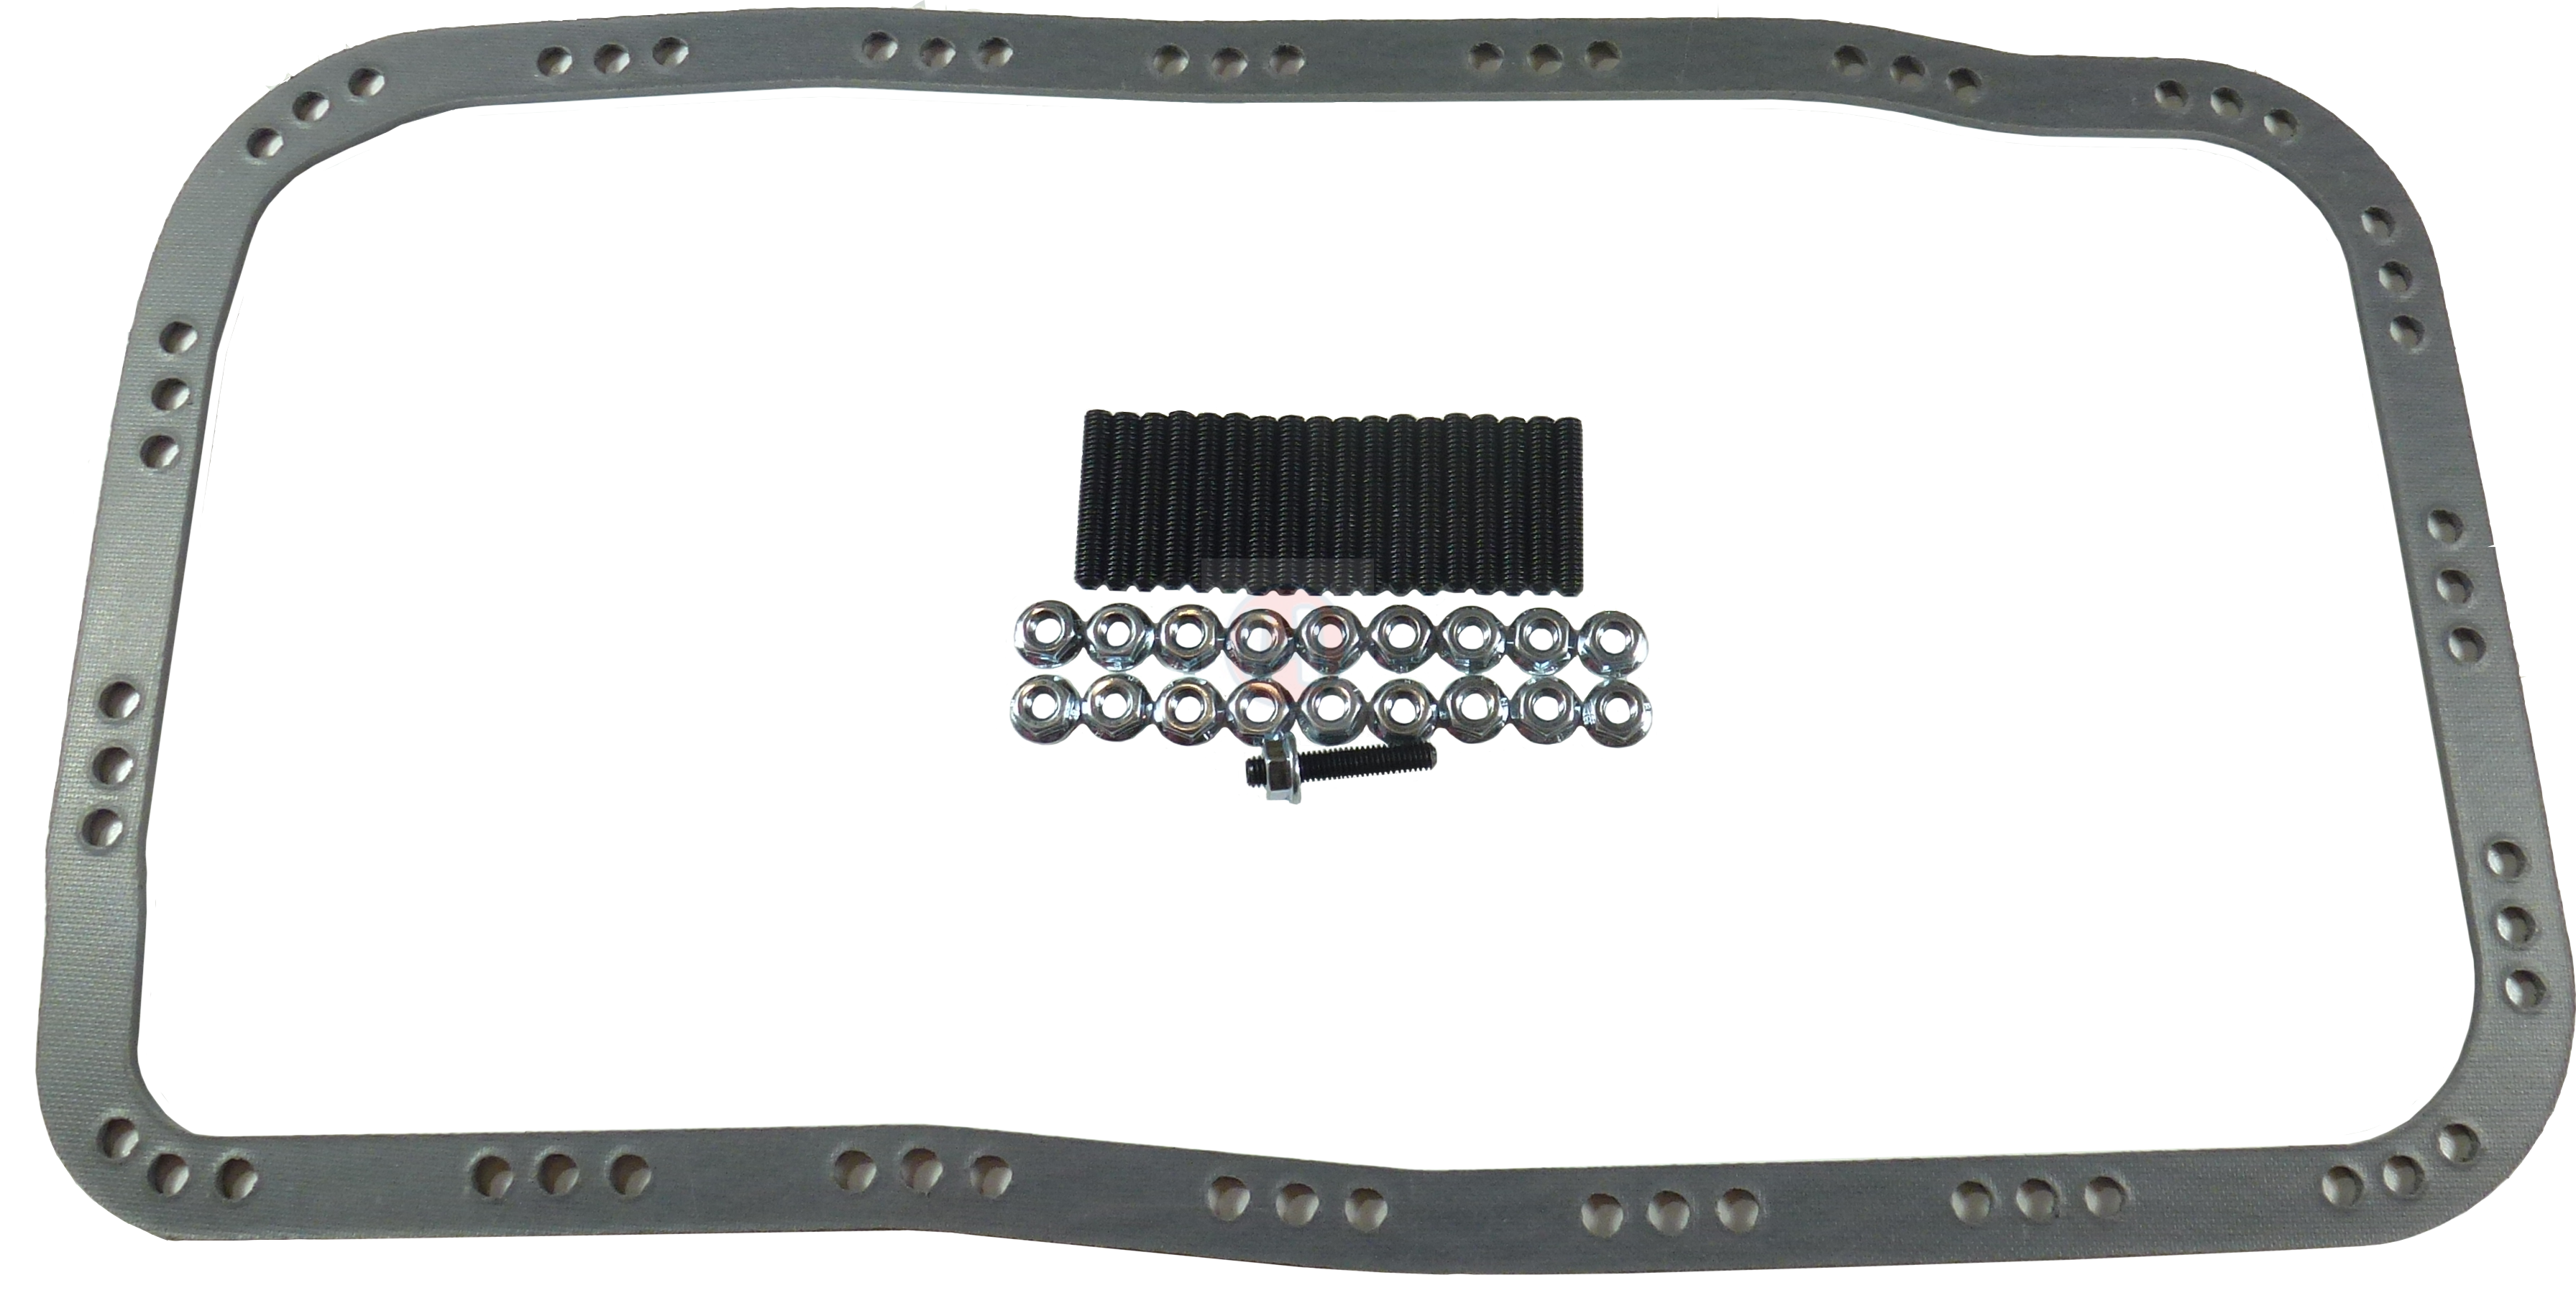 myHondaHabit Oil Pan Gasket and Stud Kit: B-series